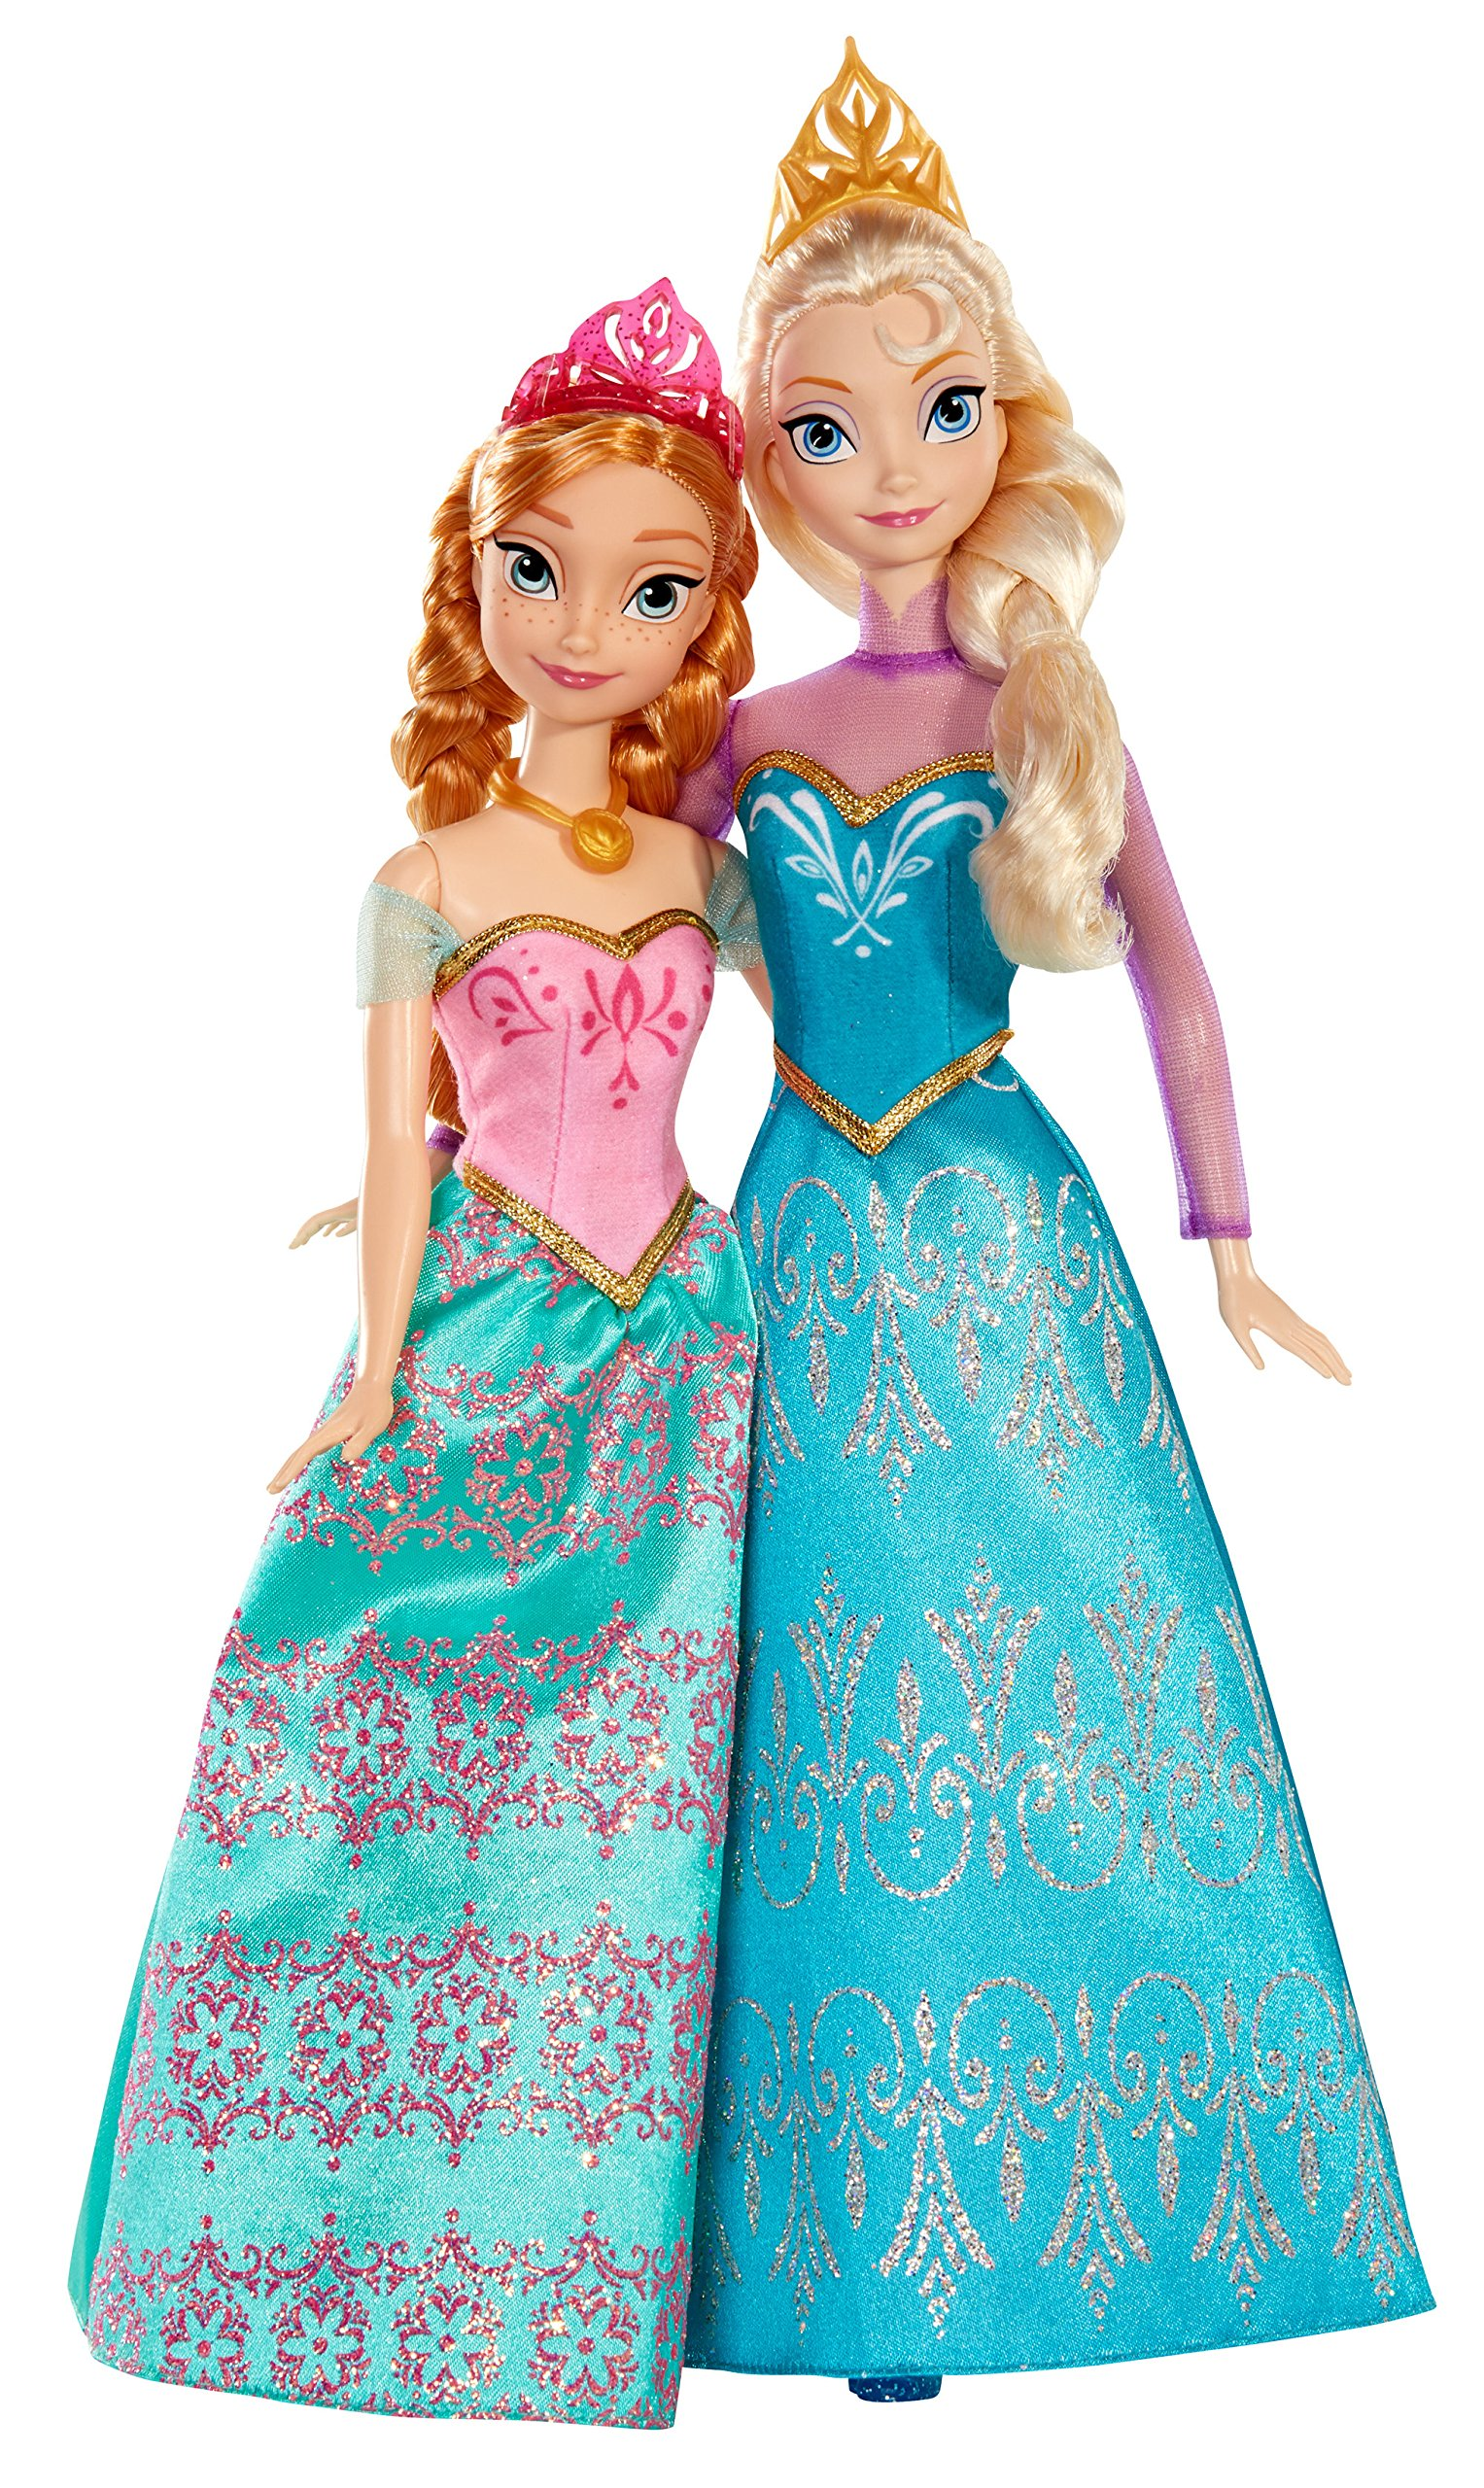 Disney Frozen Royal Sisters Doll 2-Pack